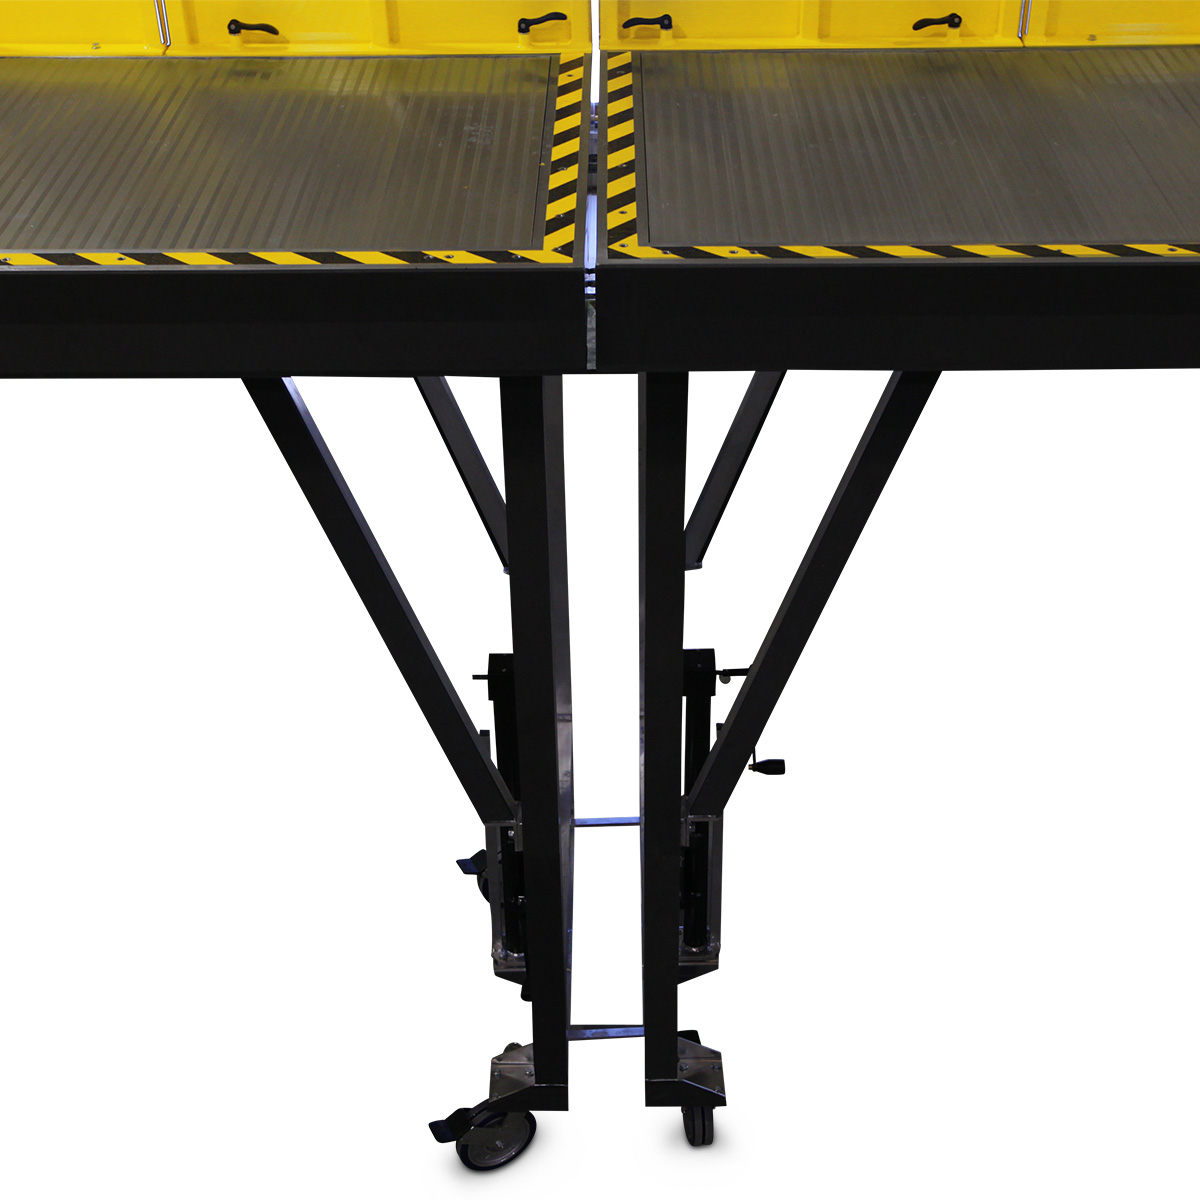 OSHA compliant mobile work platforms with adjustable guardrails and link bars to join multiple decks to create wrap around conformance specific to the article being accessed.